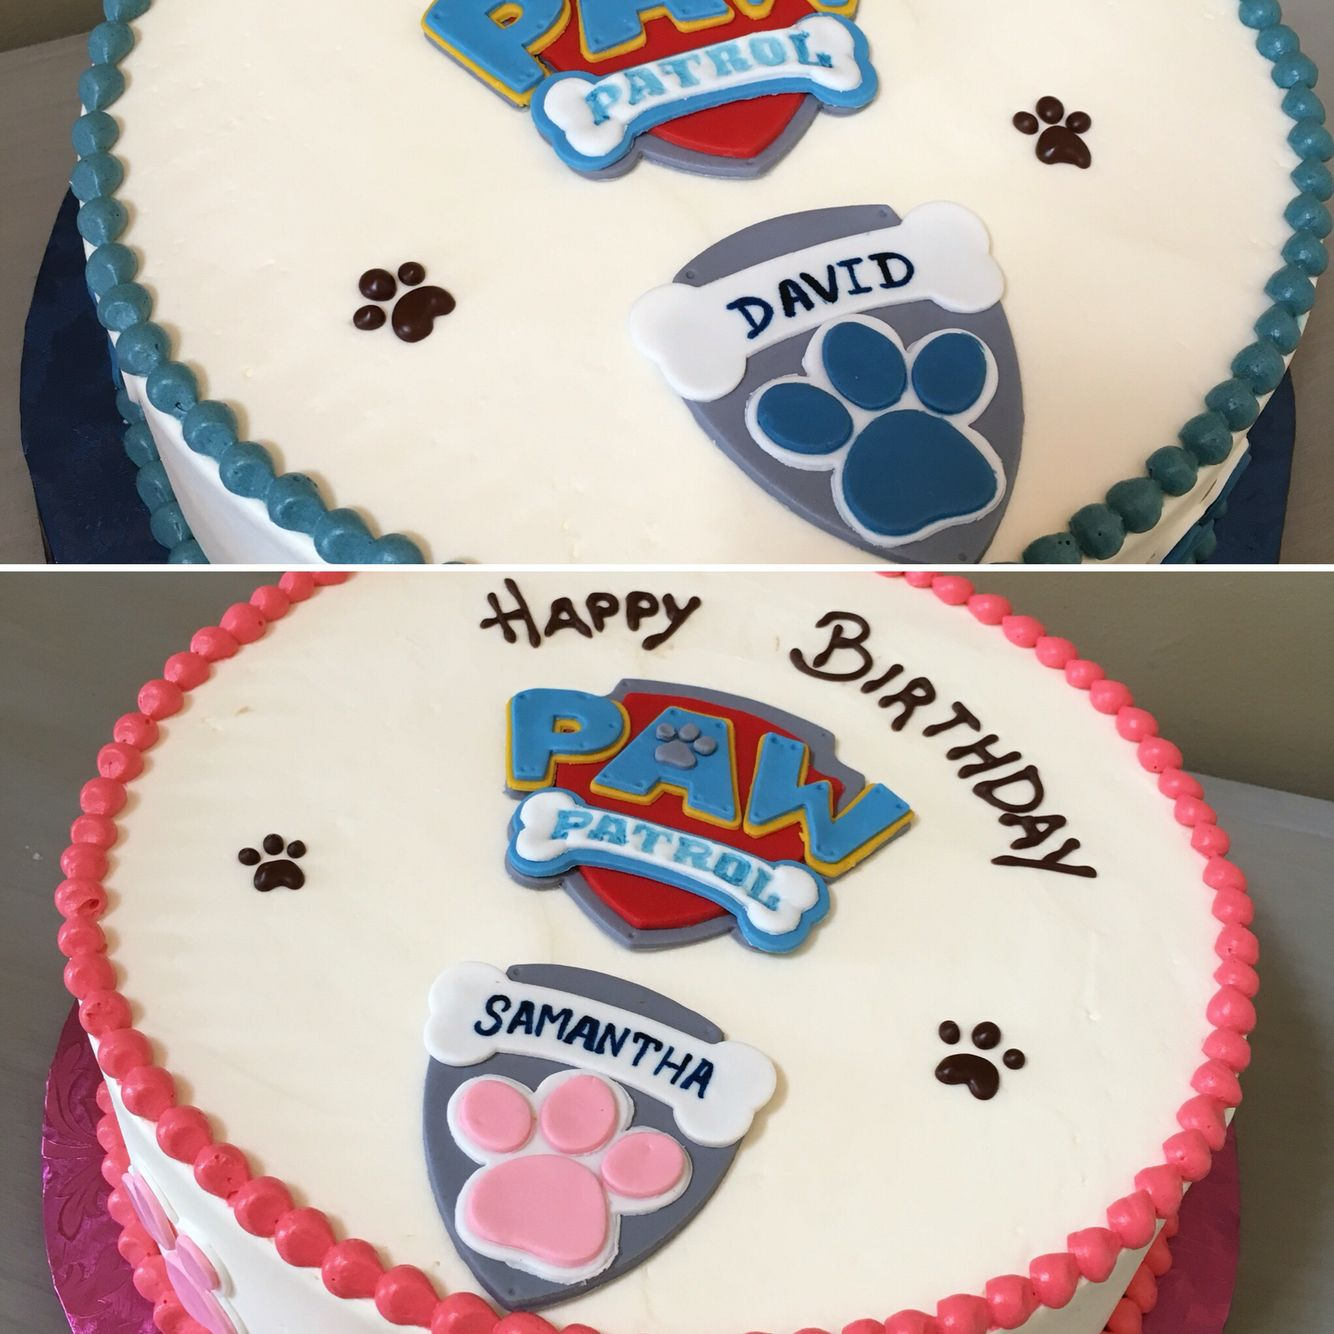 Twin Birthday With Pawpatrol Coconut And Coconut Cream Gf Cake